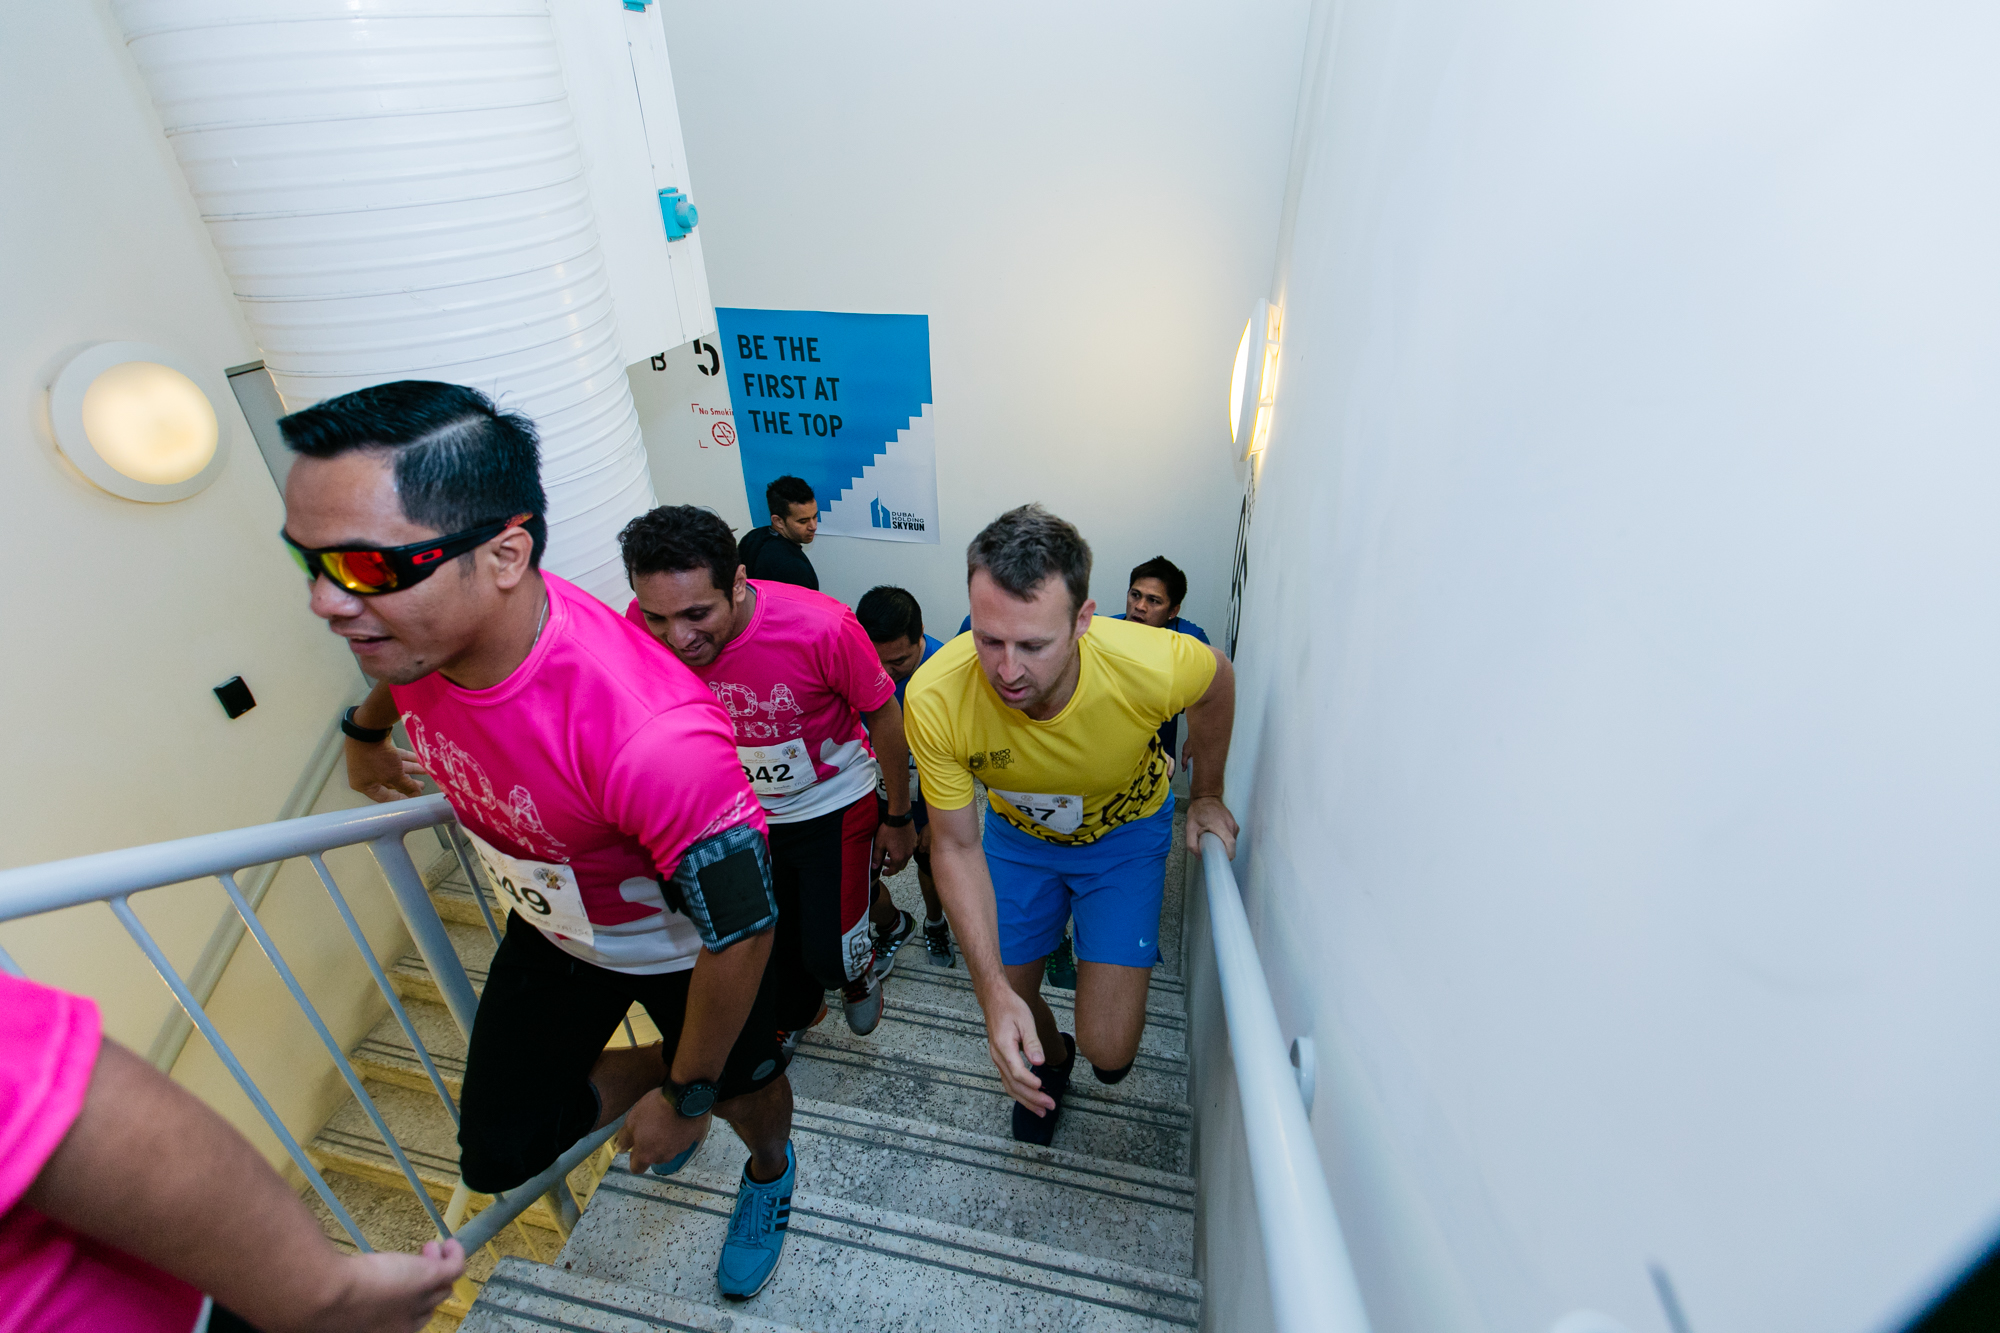 The runners in action. ©Dubai Holding SkyRun